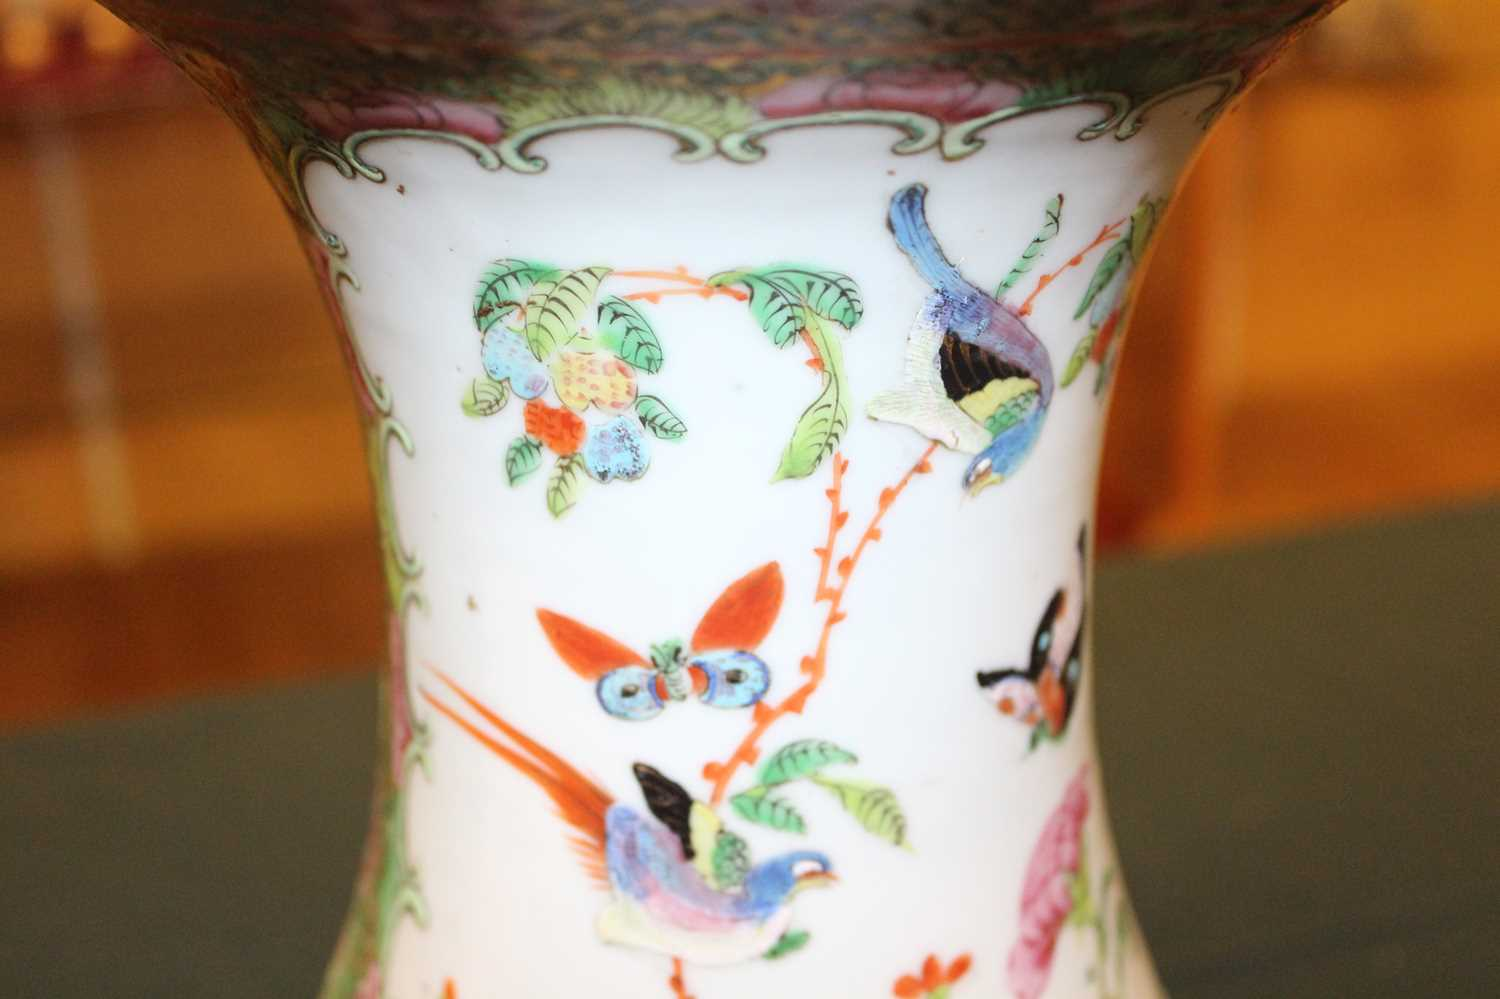 A 19th century Chinese Canton famille rose vase, enamel decorated with ceremonial figure scenes - Image 7 of 18